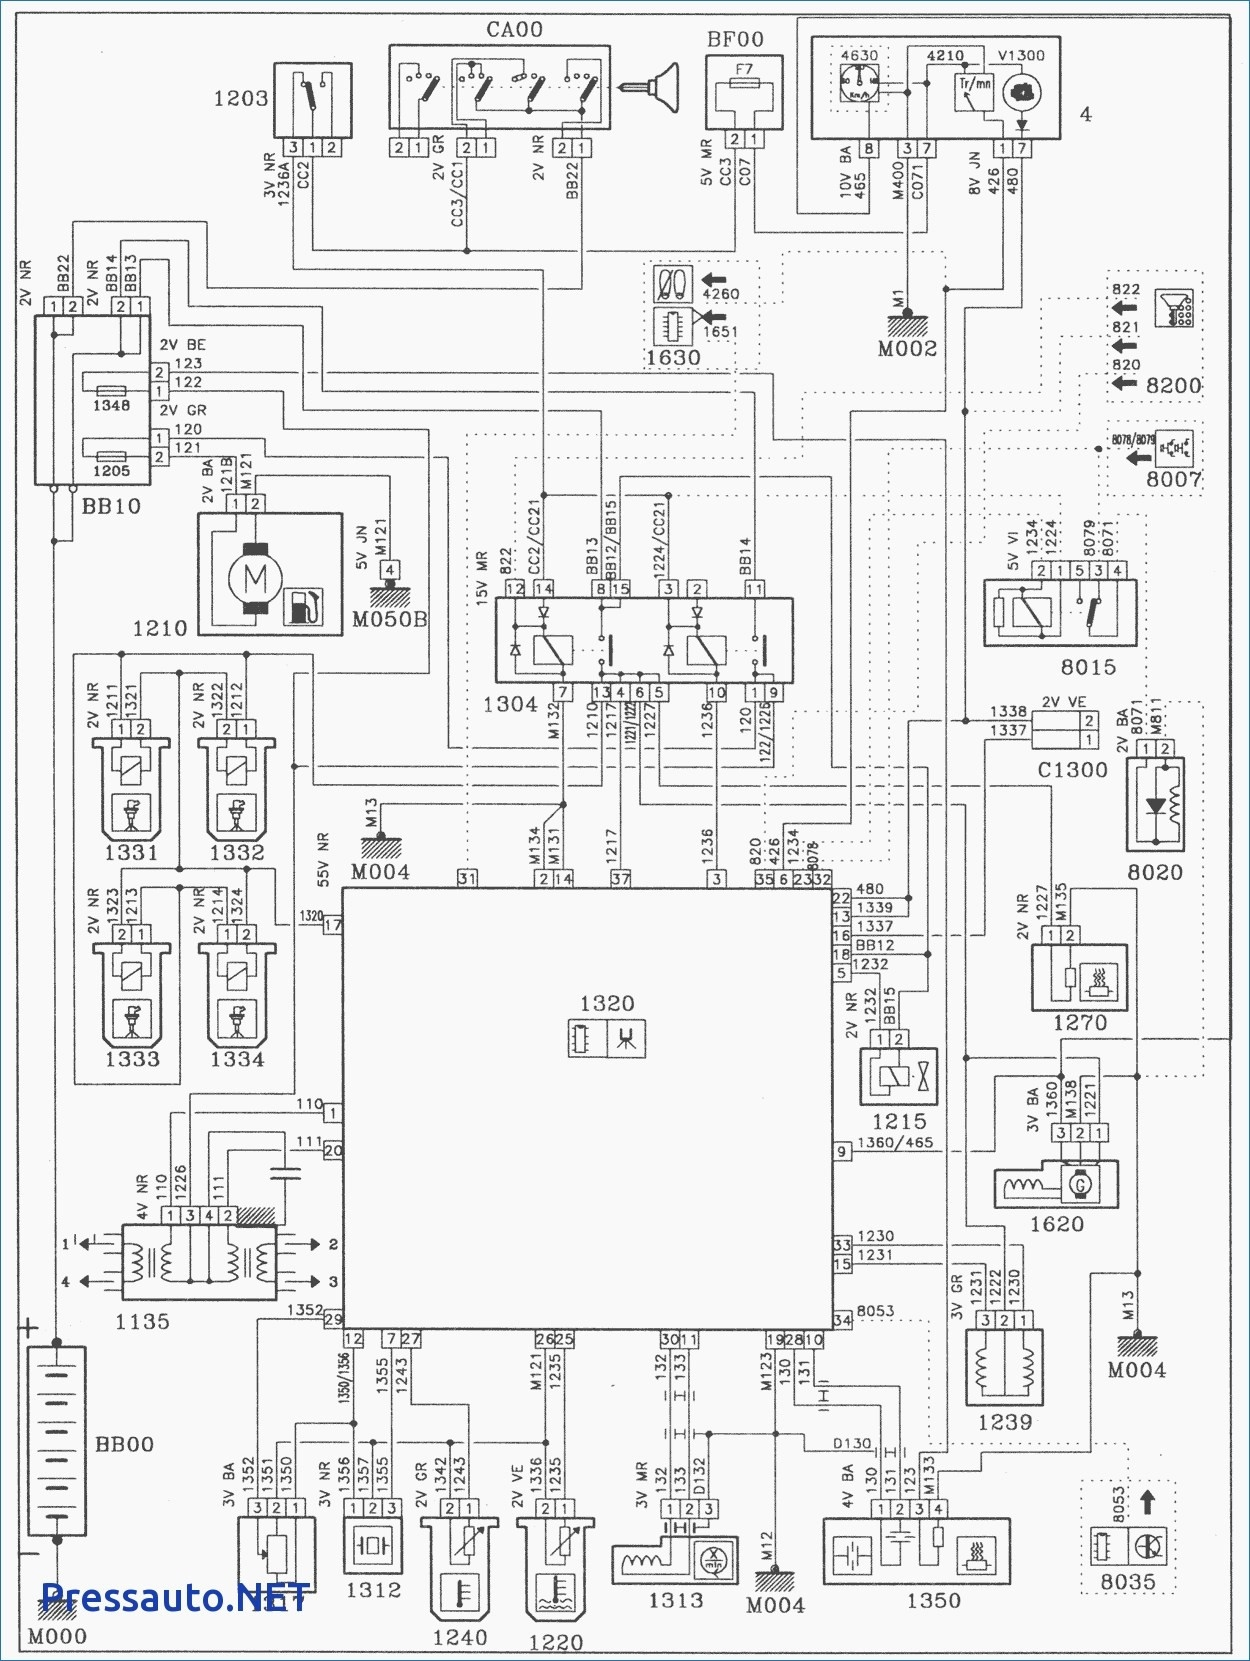 Air Conditioner Pressor Diagram